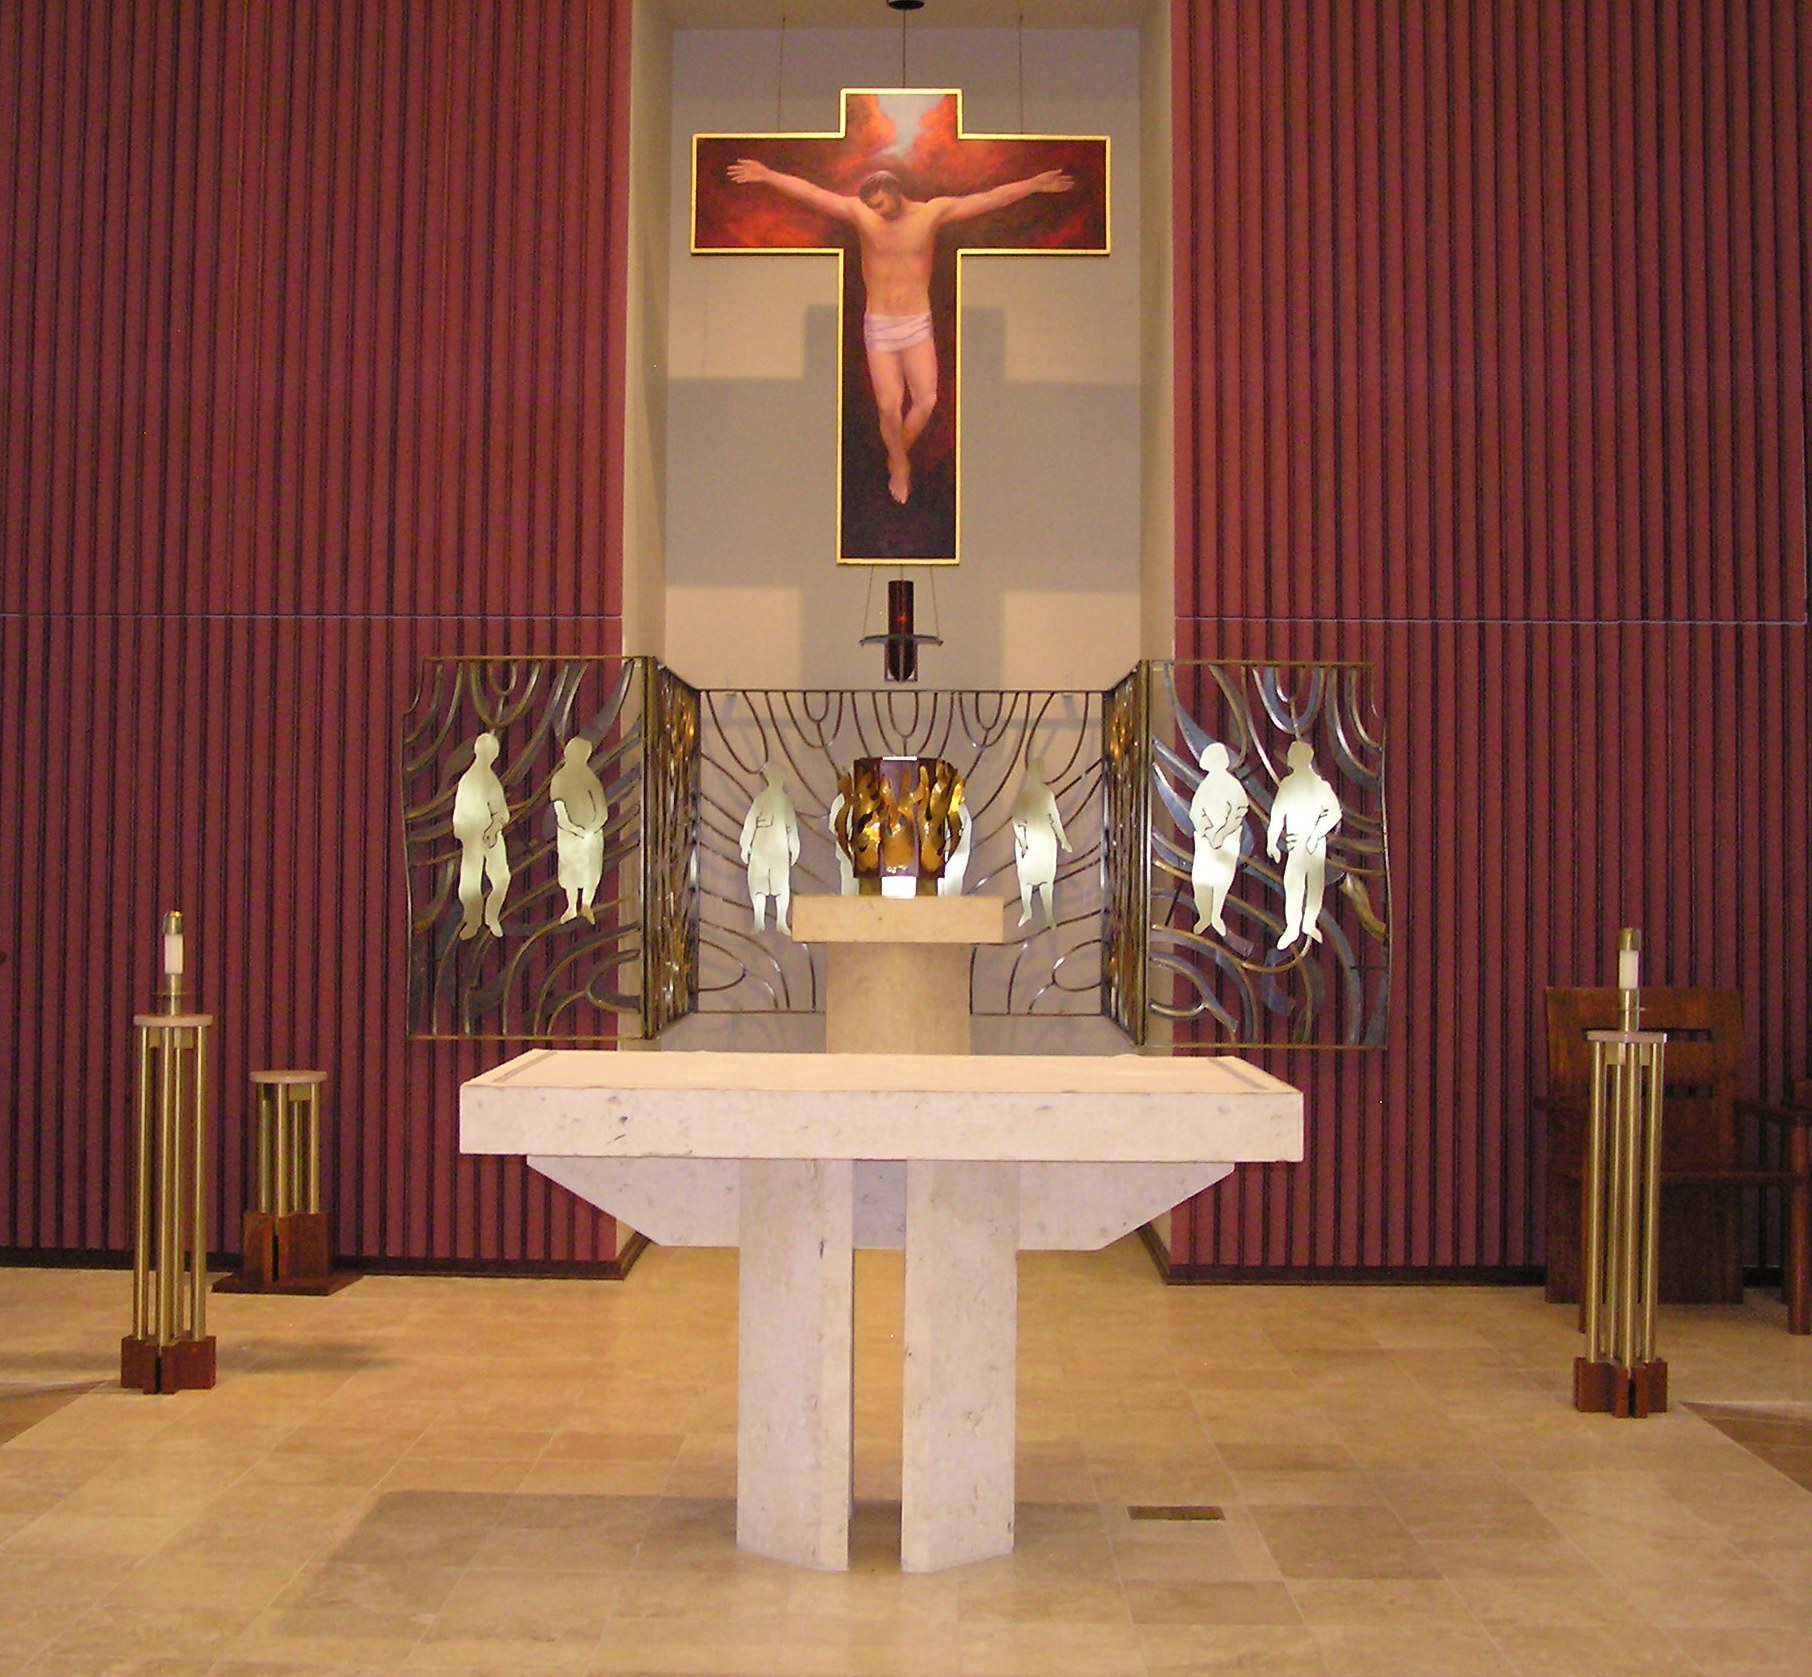 Chapel Pict Oct 2012.JPG